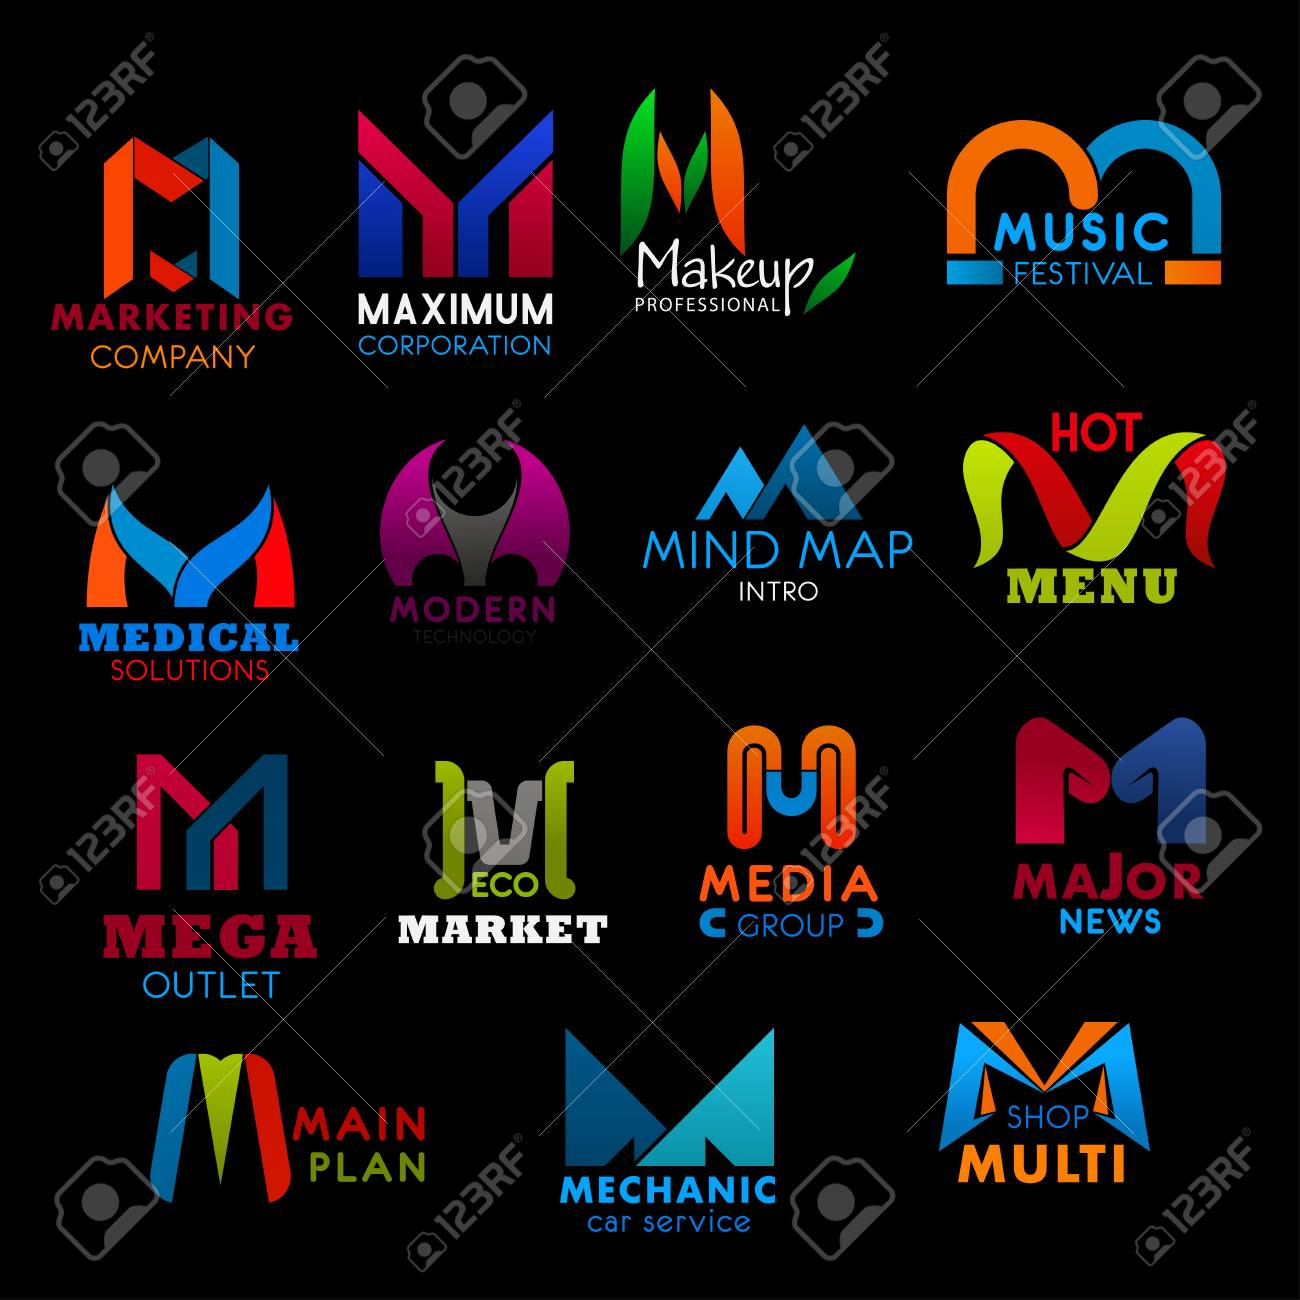 M letter icons for business. Marketing and maximum, makeup and music, medical and modern, mind map and menu, mega and market. Media and major, main and mechanic, multi badges vector isolated - 118167845